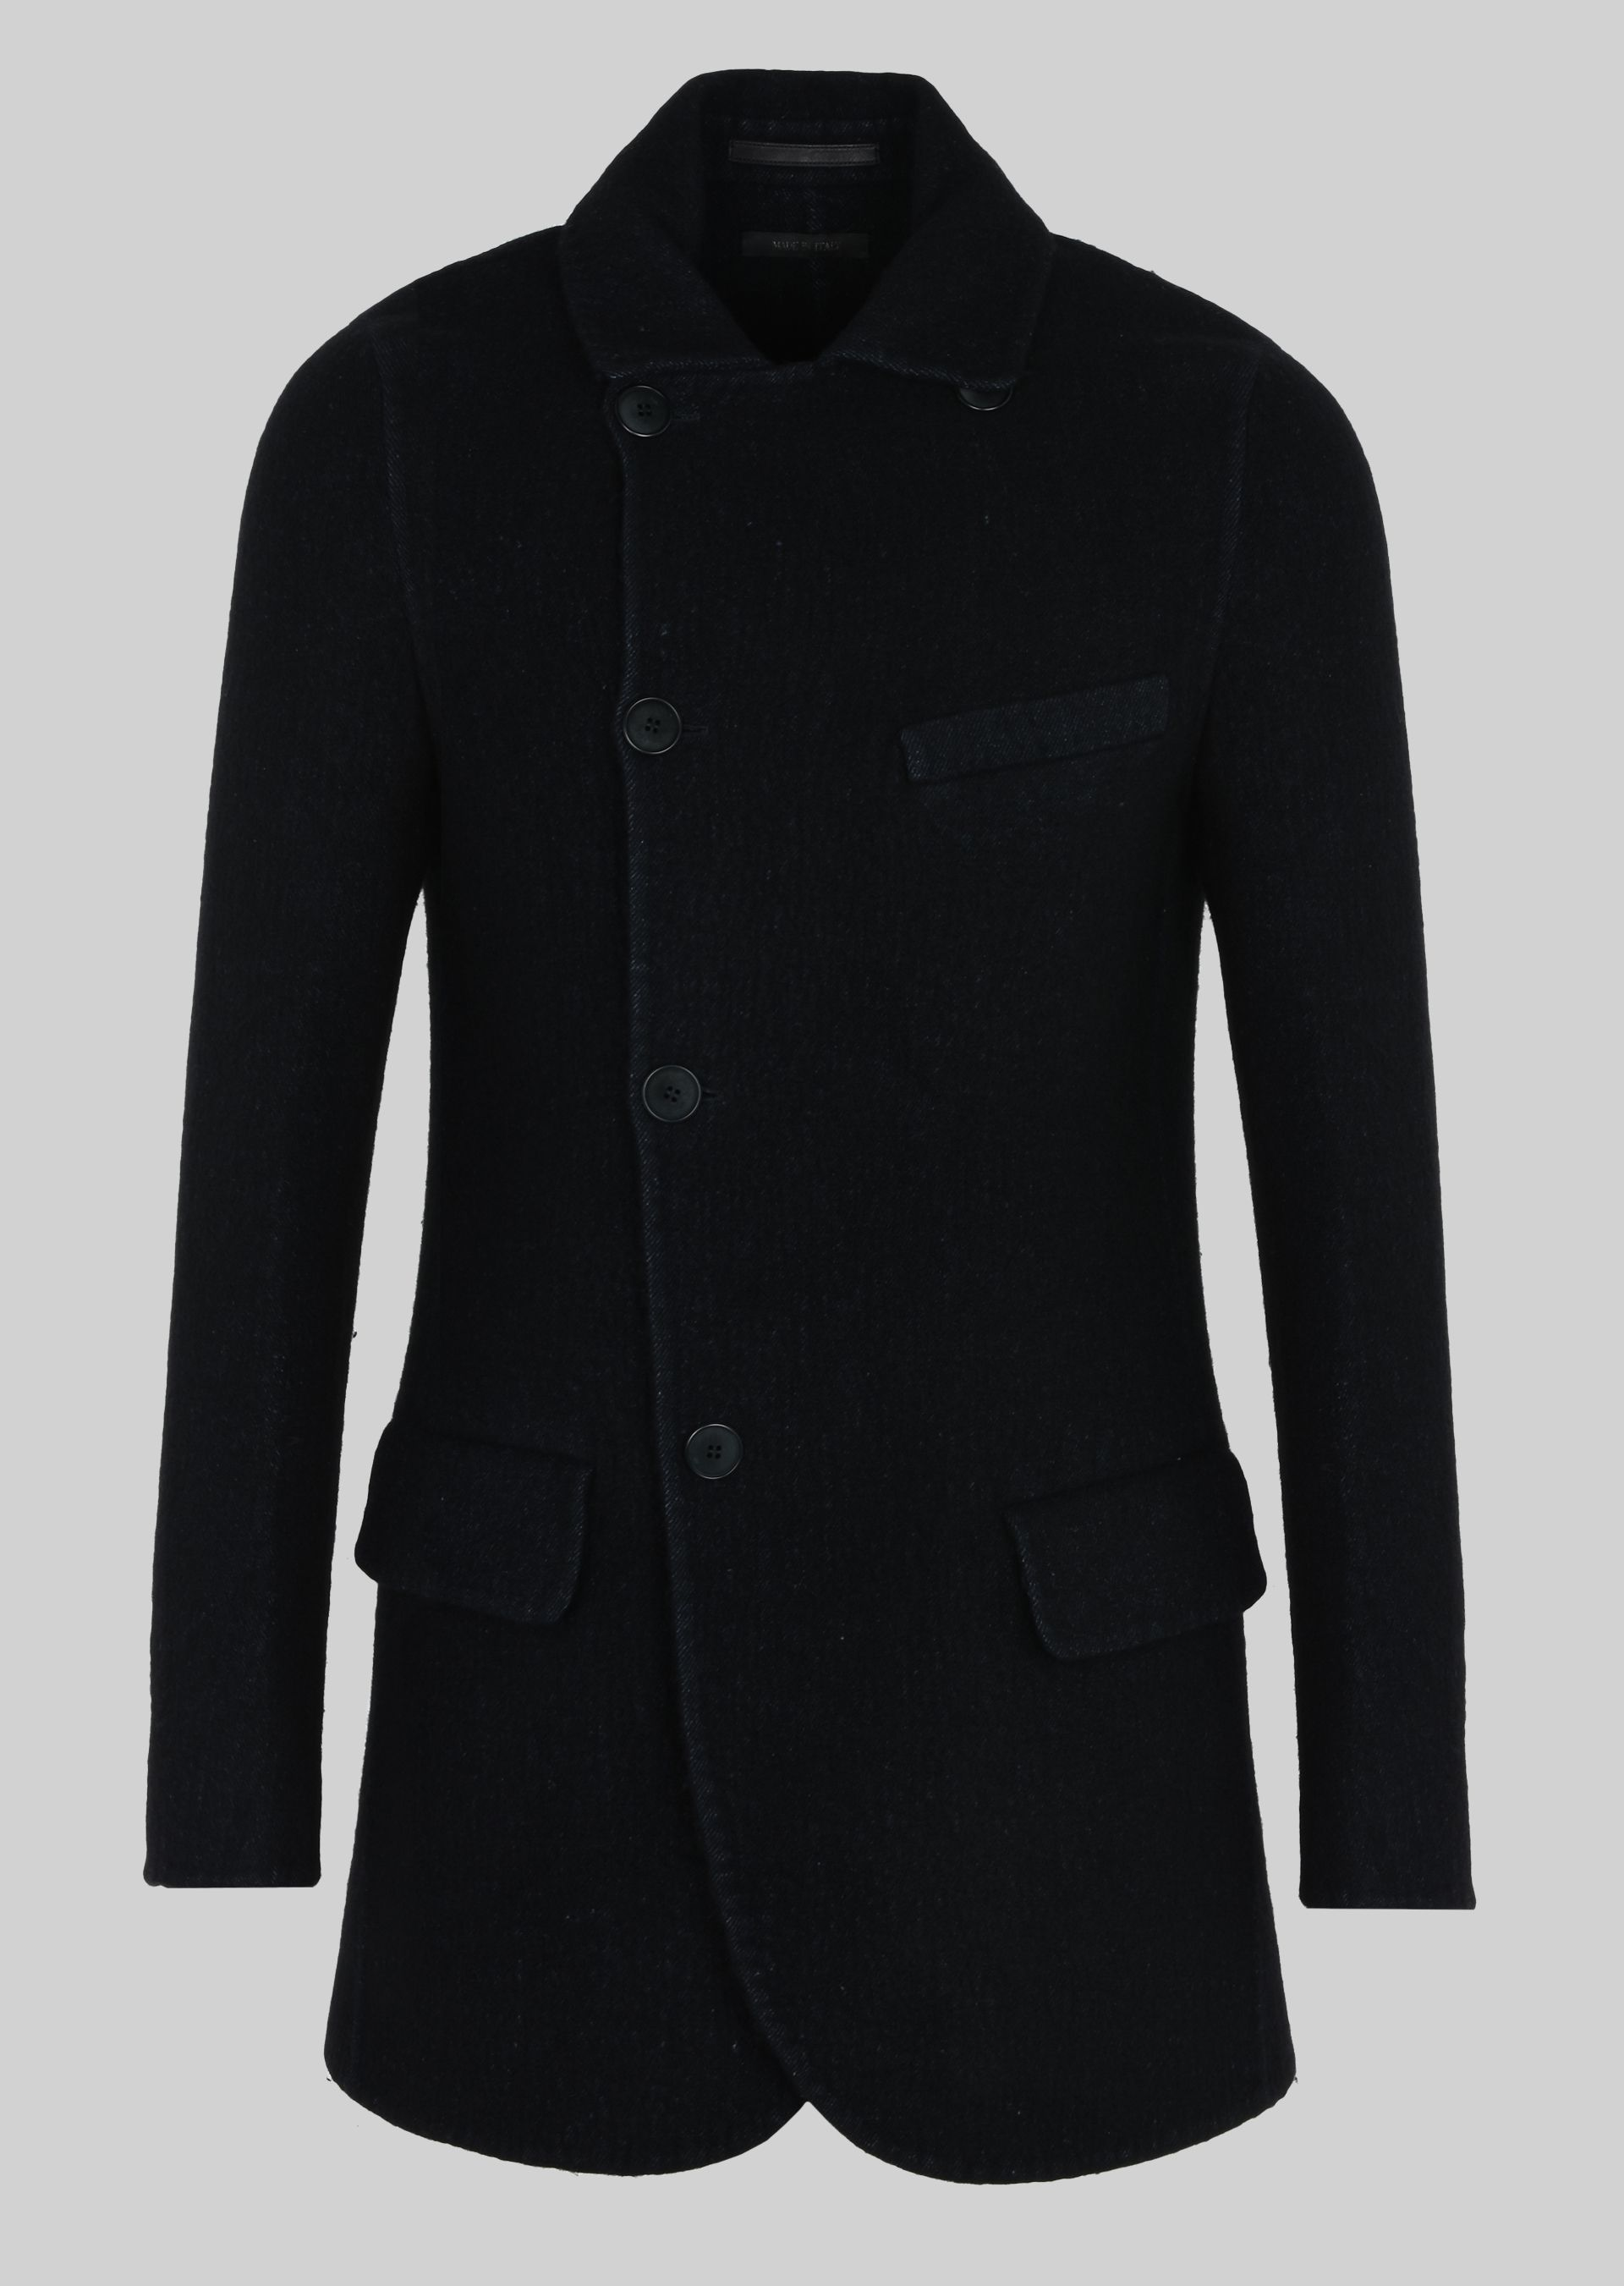 PEA COAT IN DOUBLE WOOL AND LINEN FABRIC for Men |